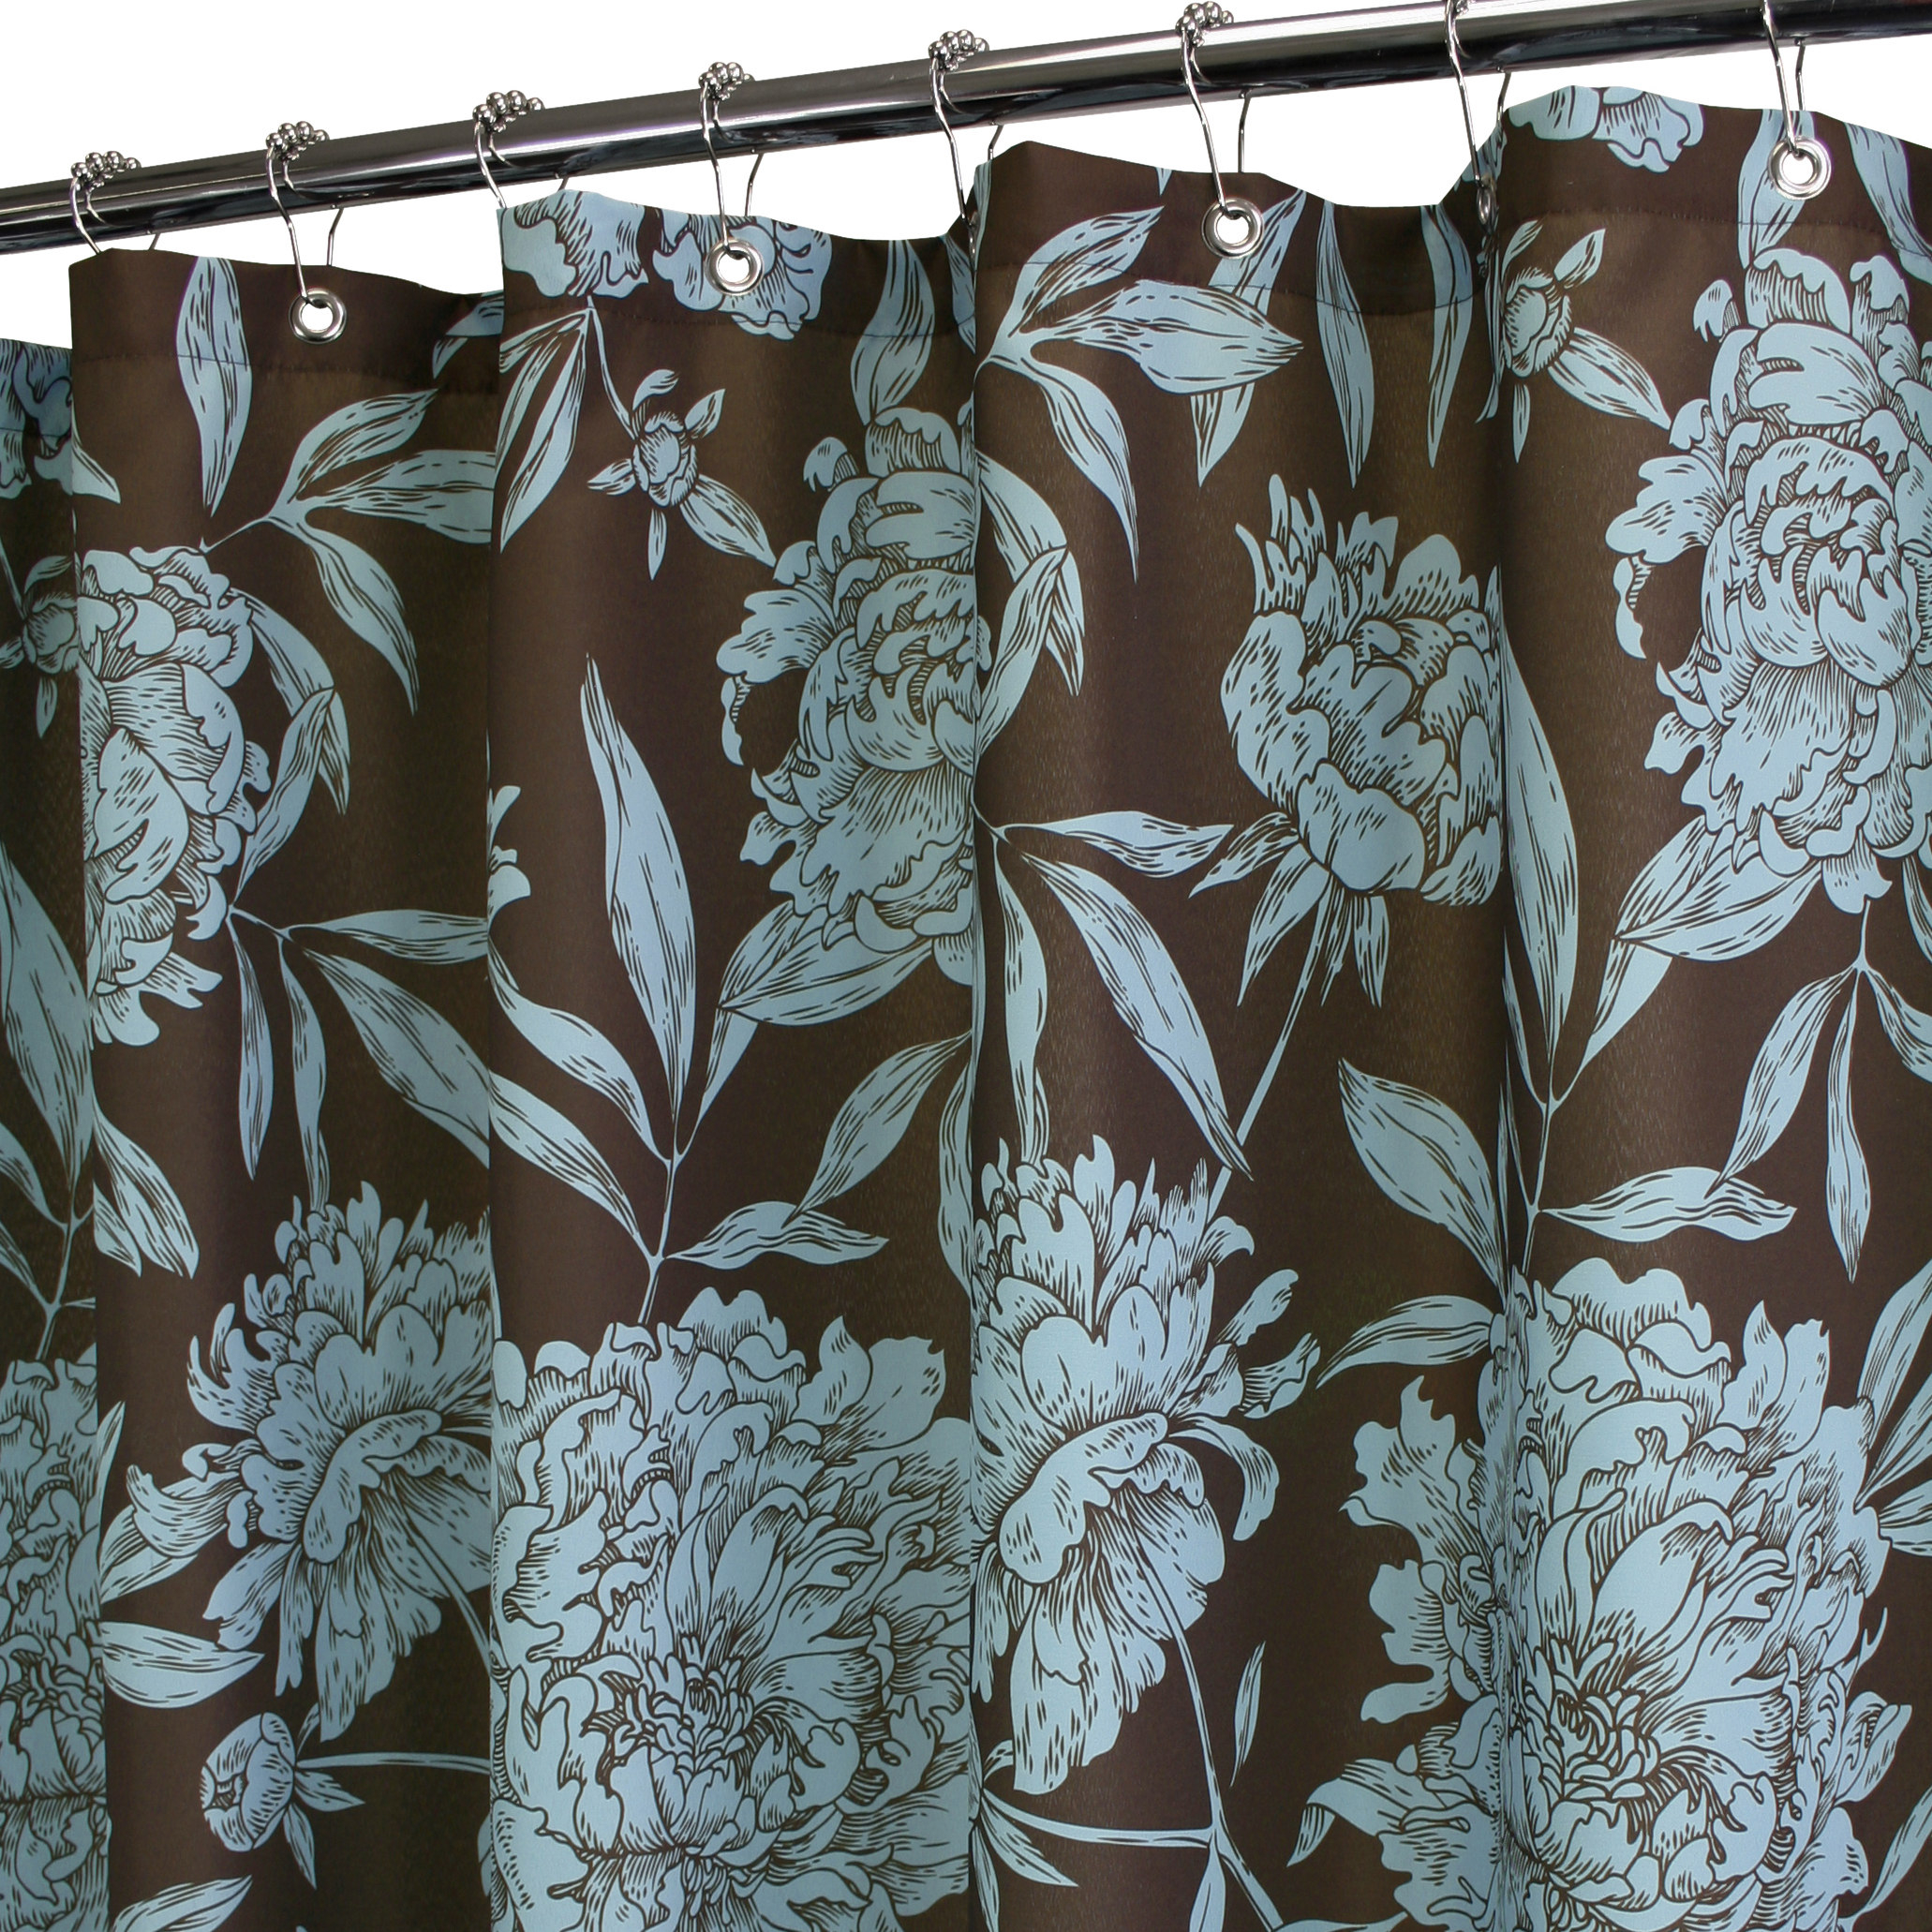 90 Park B Smith Pouf Shower Curtain Park B Smith Pouf